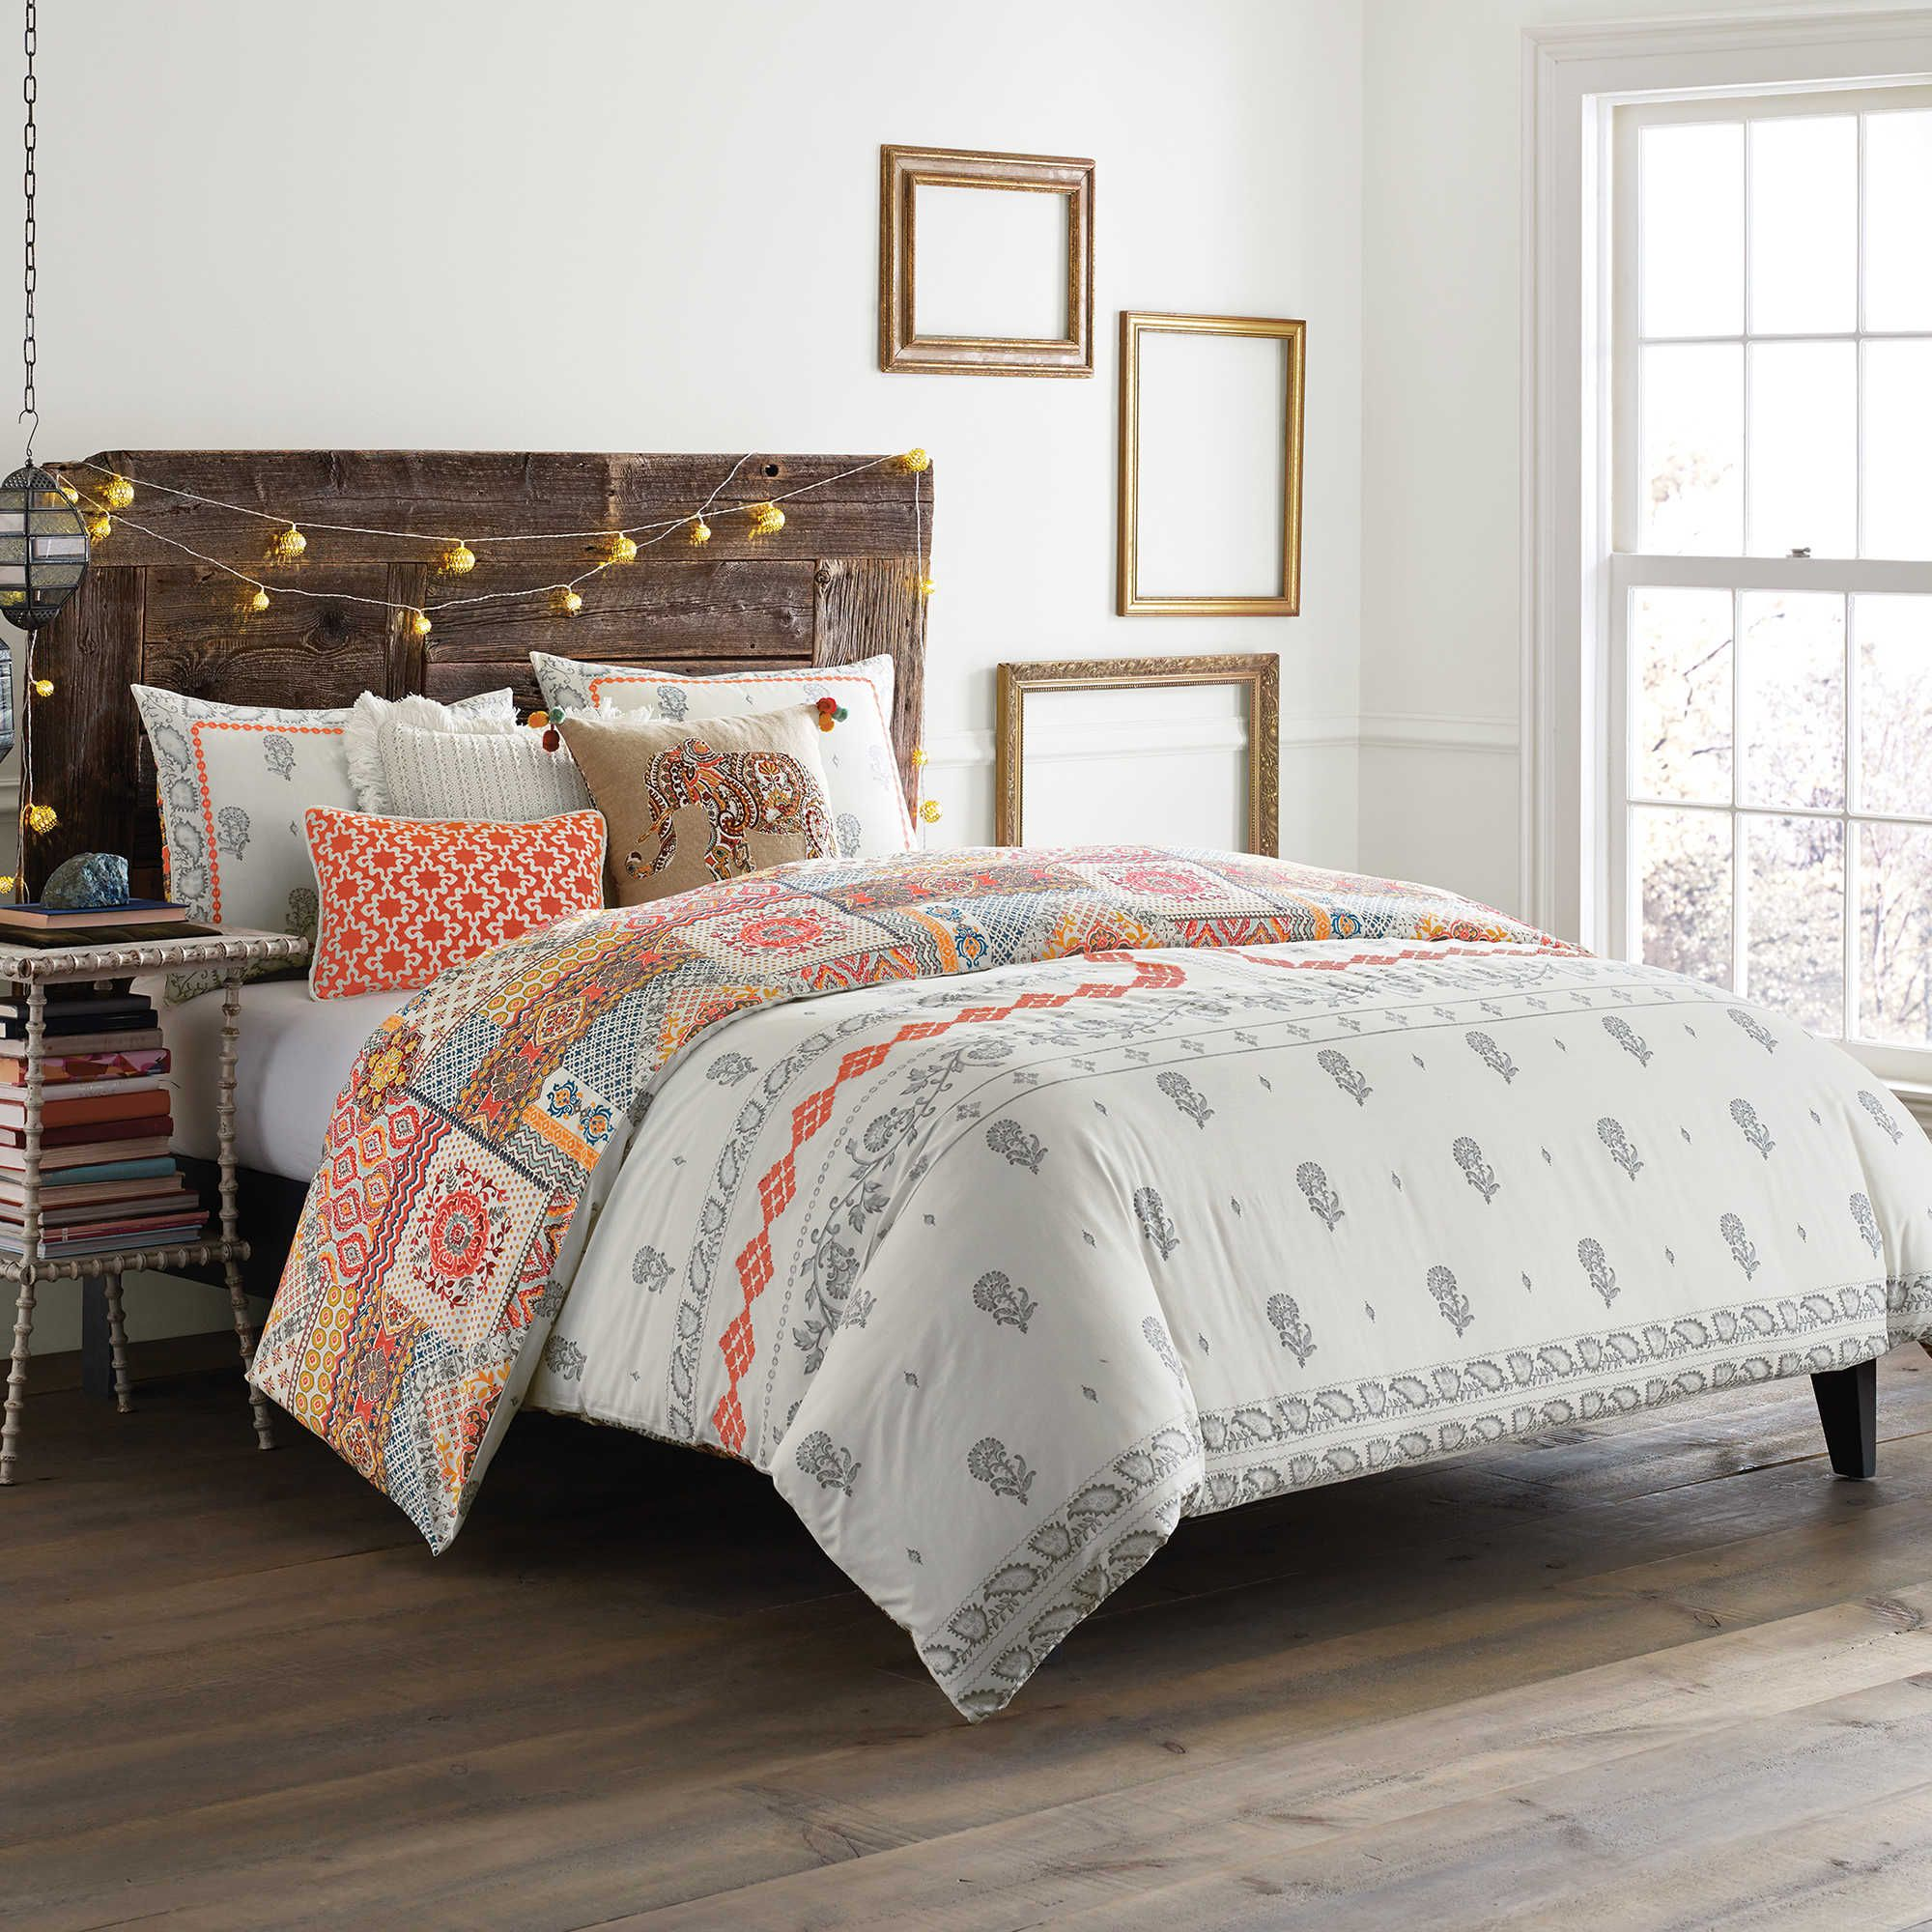 hei tribal quilts b bedding quilt print tufted anthropologie comforter unique coverlets cidra